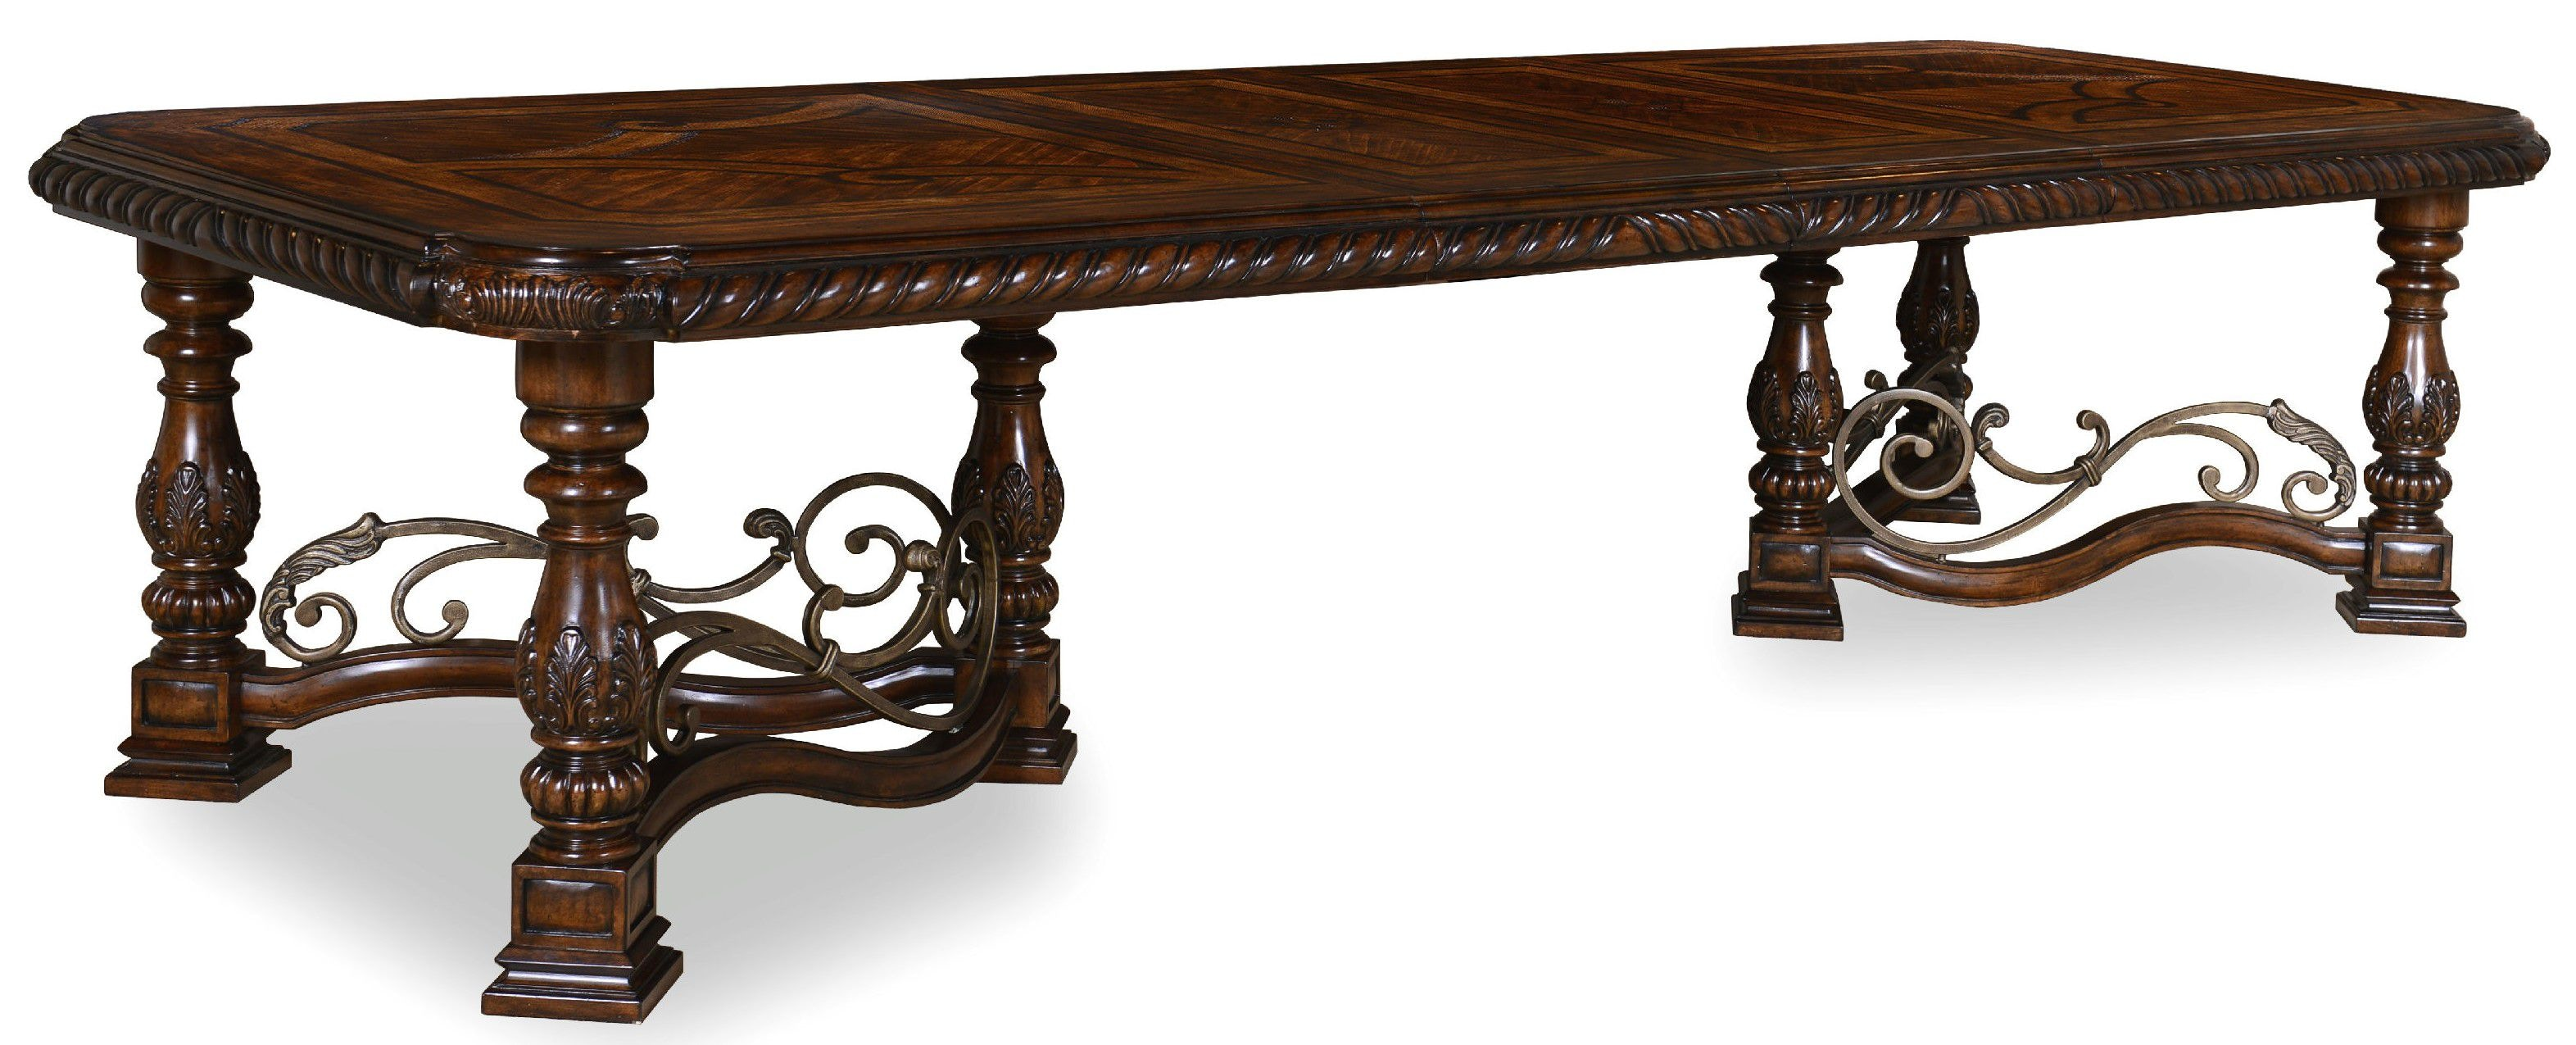 ART Furniture Trestle Dining Table Top 209221 2304TP